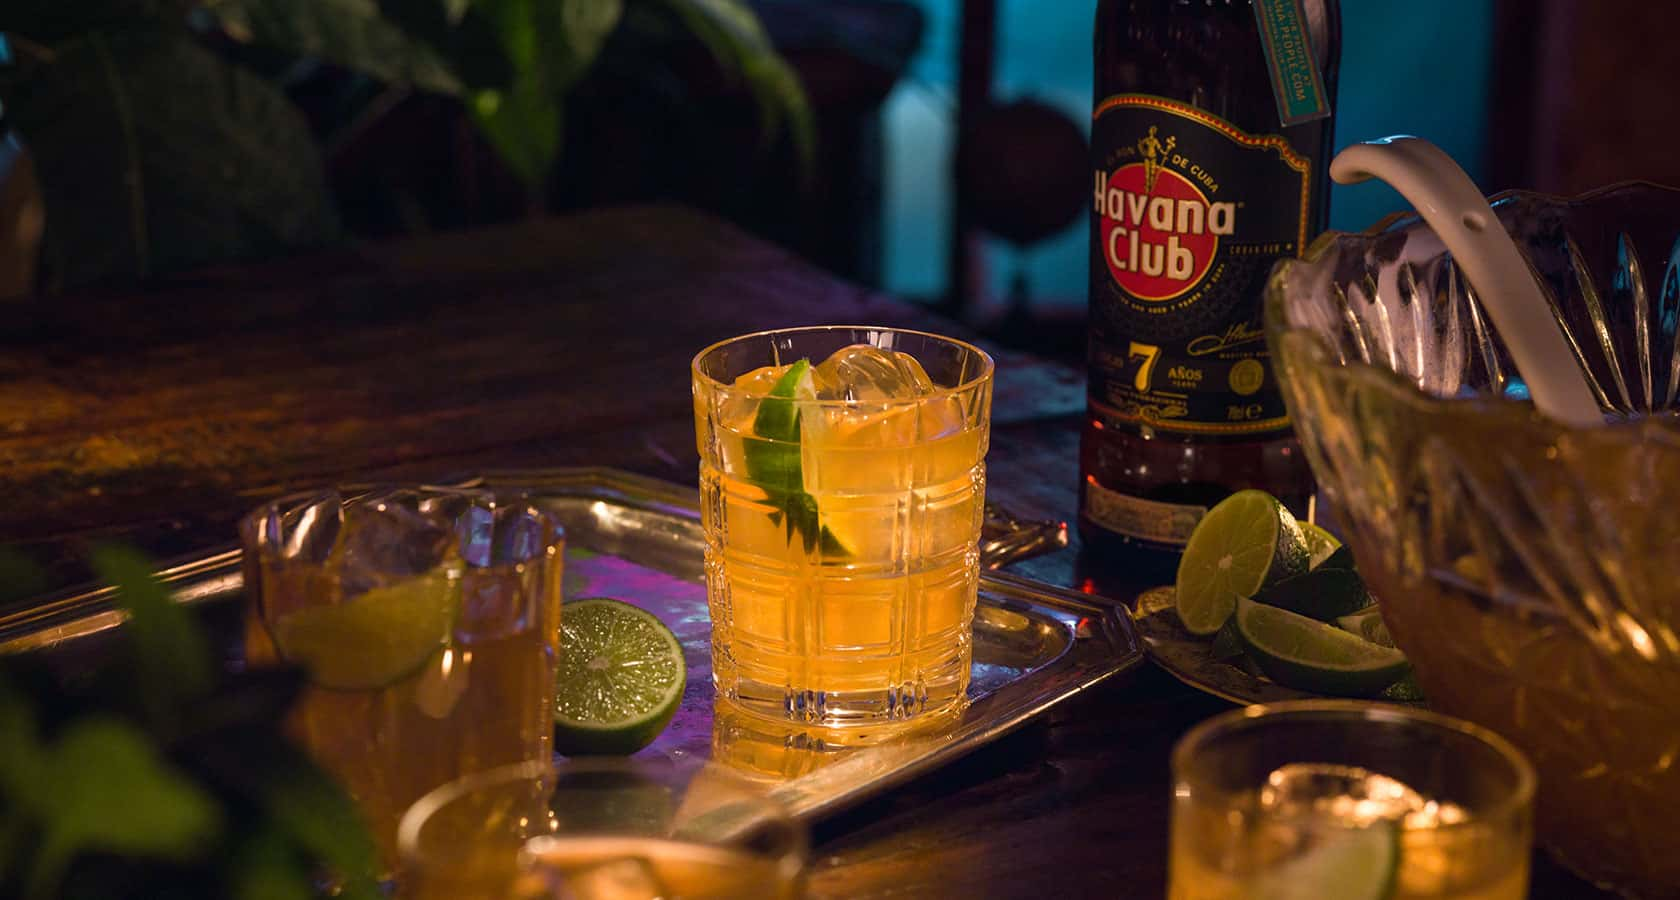 Canch nchara for many recipe rum cocktails havana club for Cocktail havana club